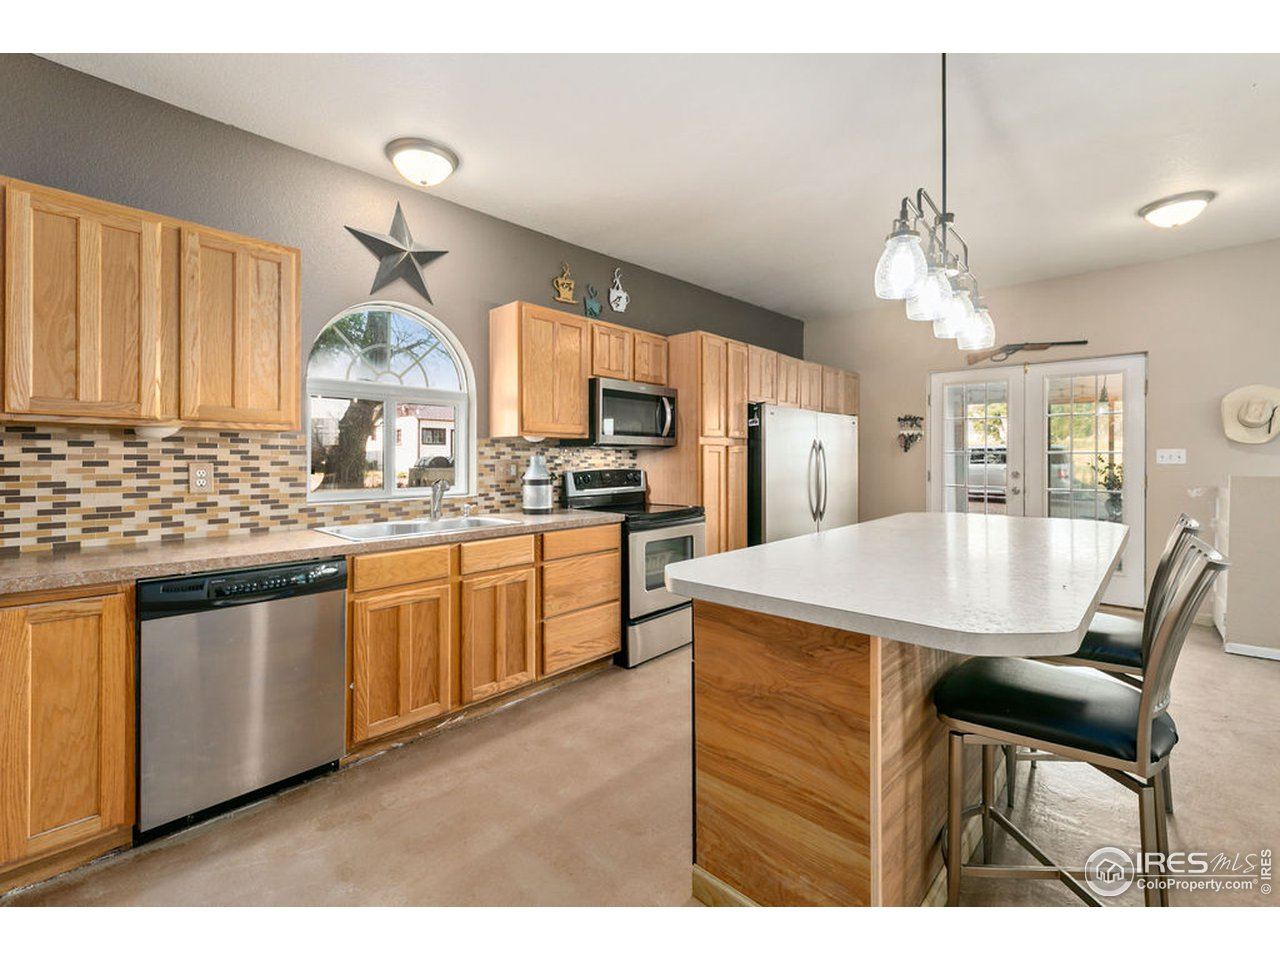 Step inside to the newer kitchen with oak cabinets, stainless appliances, a big island and a commercial size refrigerator and freezer.